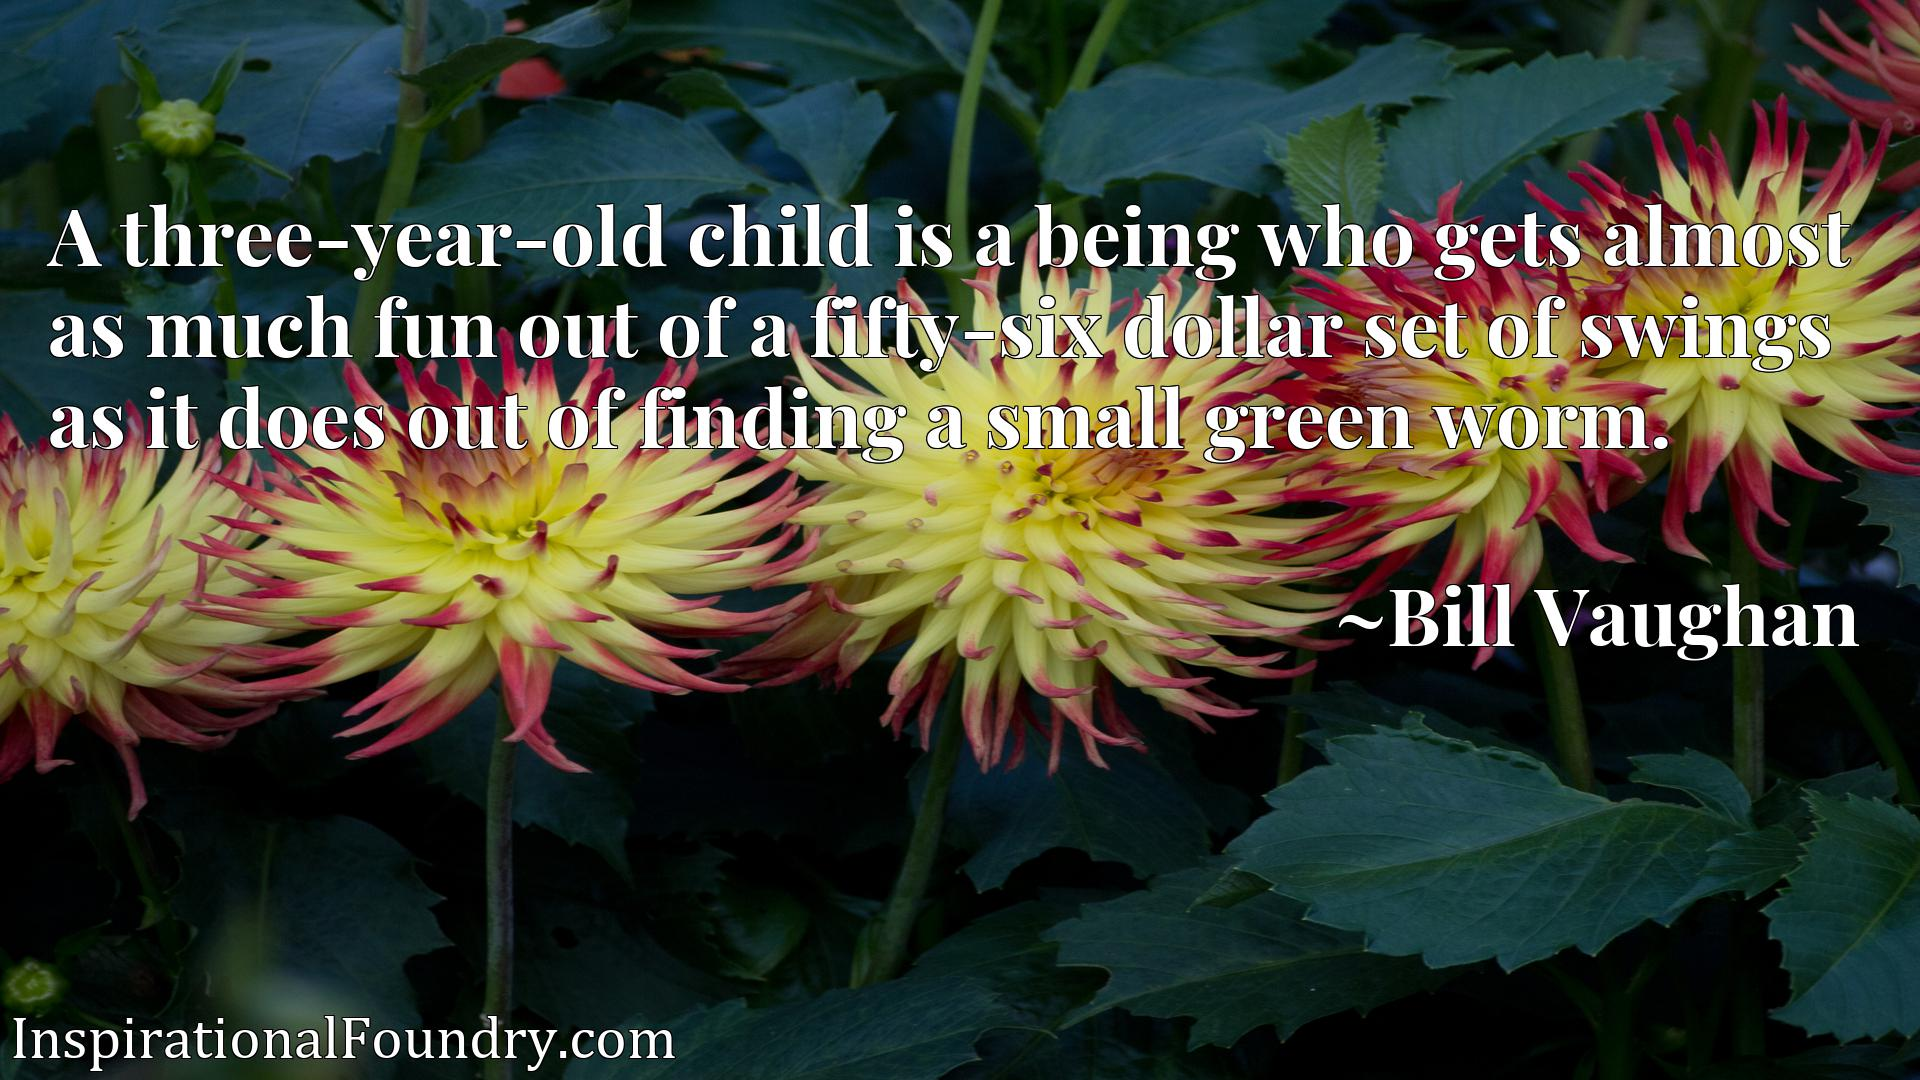 Quote Picture :A three-year-old child is a being who gets almost as much fun out of a fifty-six dollar set of swings as it does out of finding a small green worm.